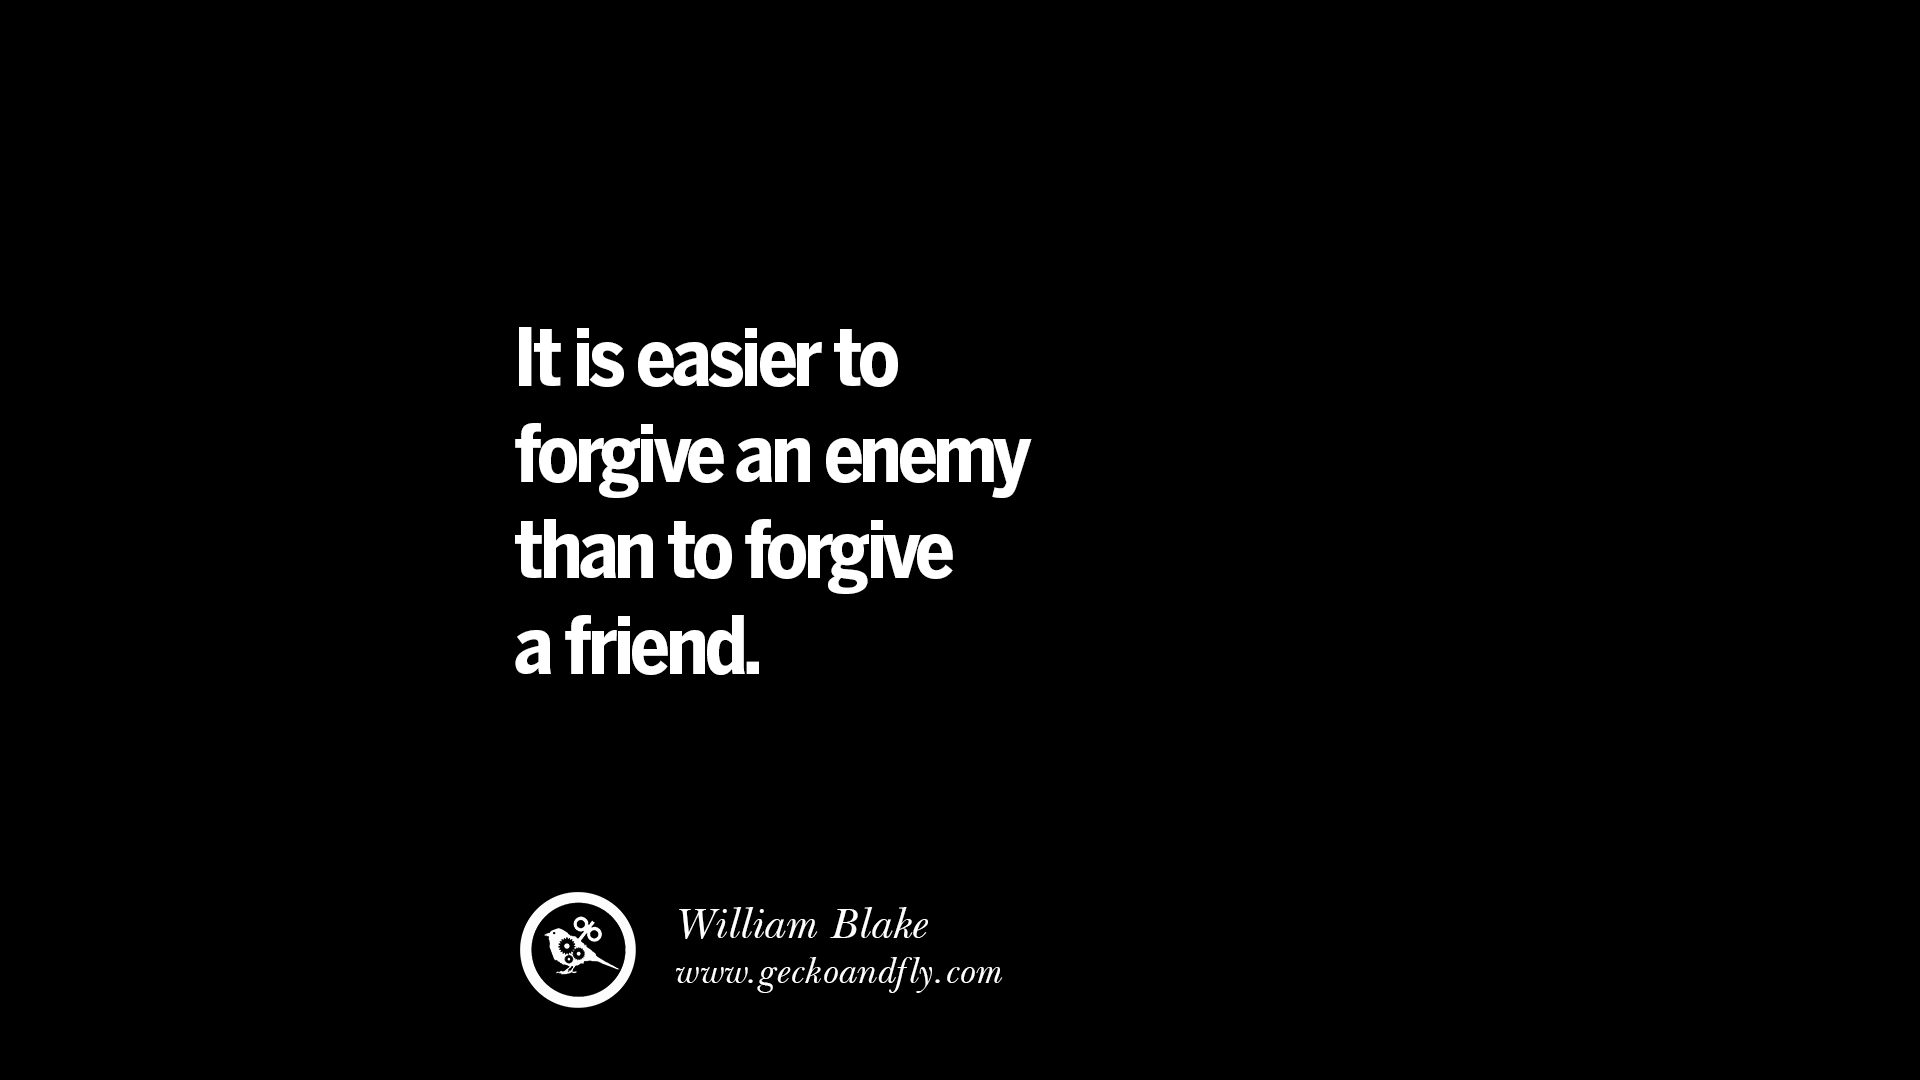 Quotes On Friendship Trust And Love Betrayal It Is Easier To Forgive An Enemy Than